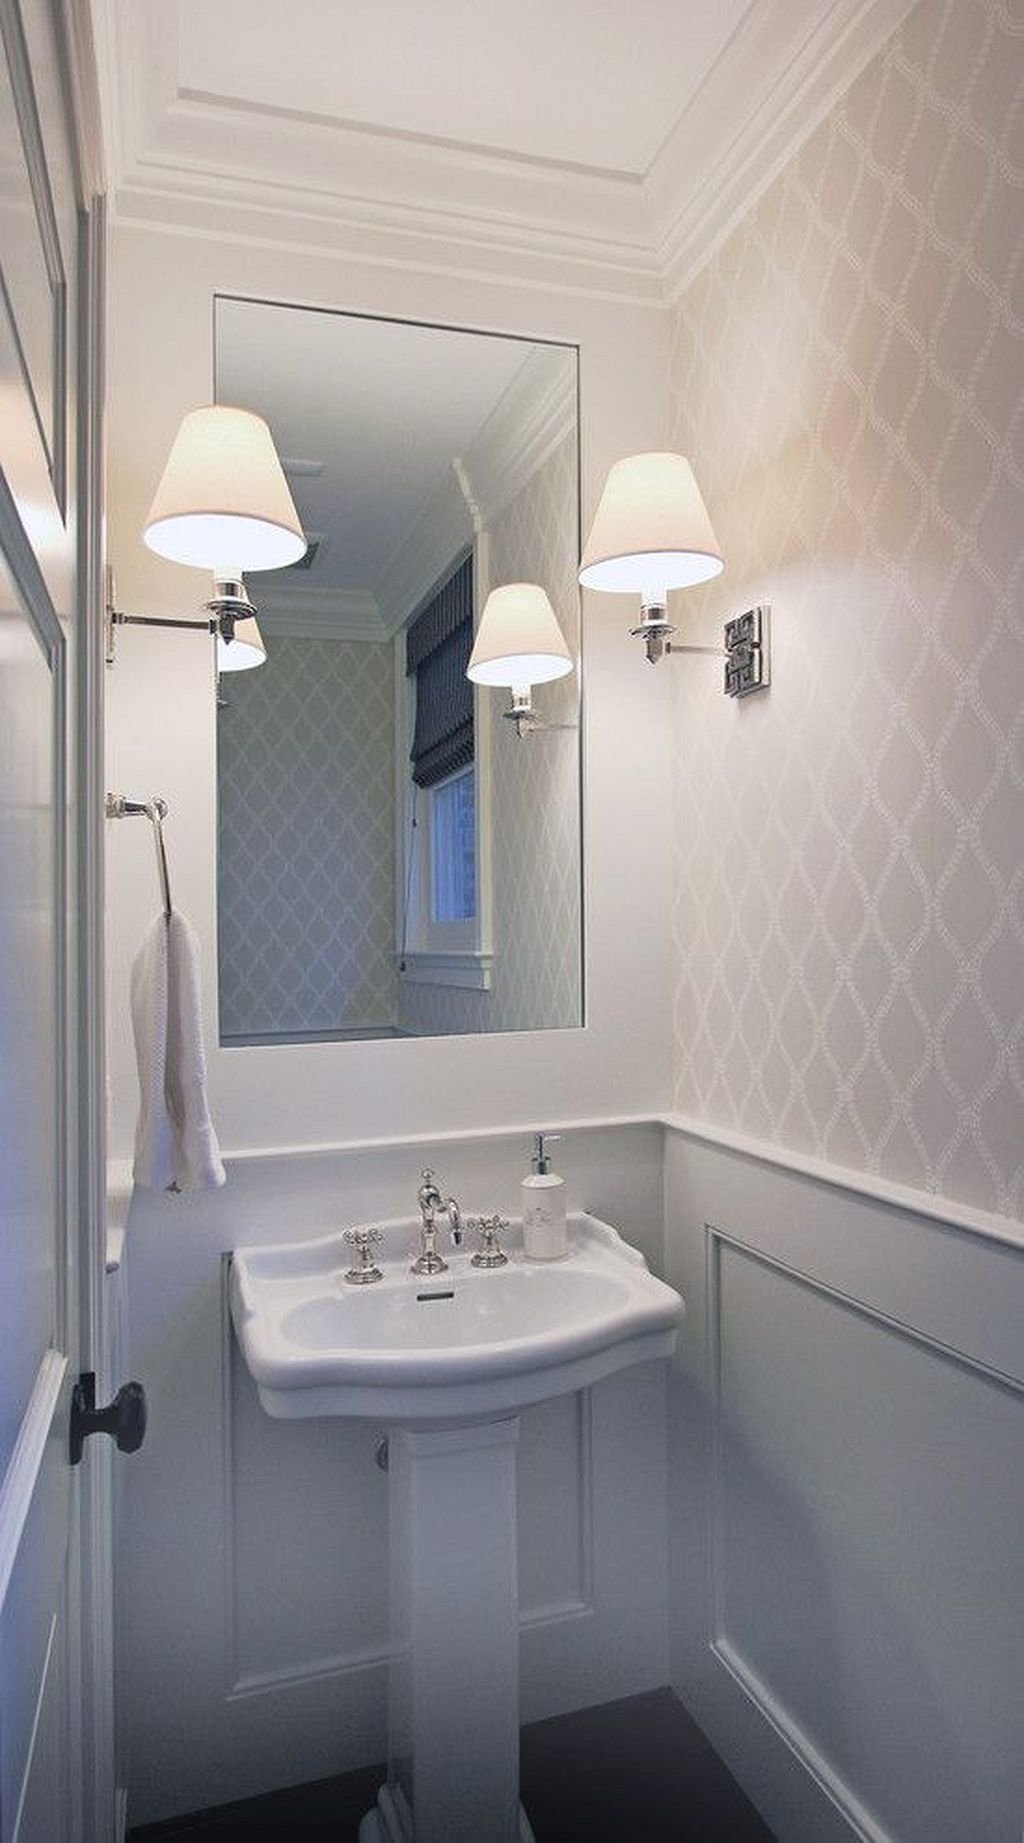 10 Ideal Small Powder Room Decorating Ideas ideas that nobody told you about small powder room 22 small powder 2020